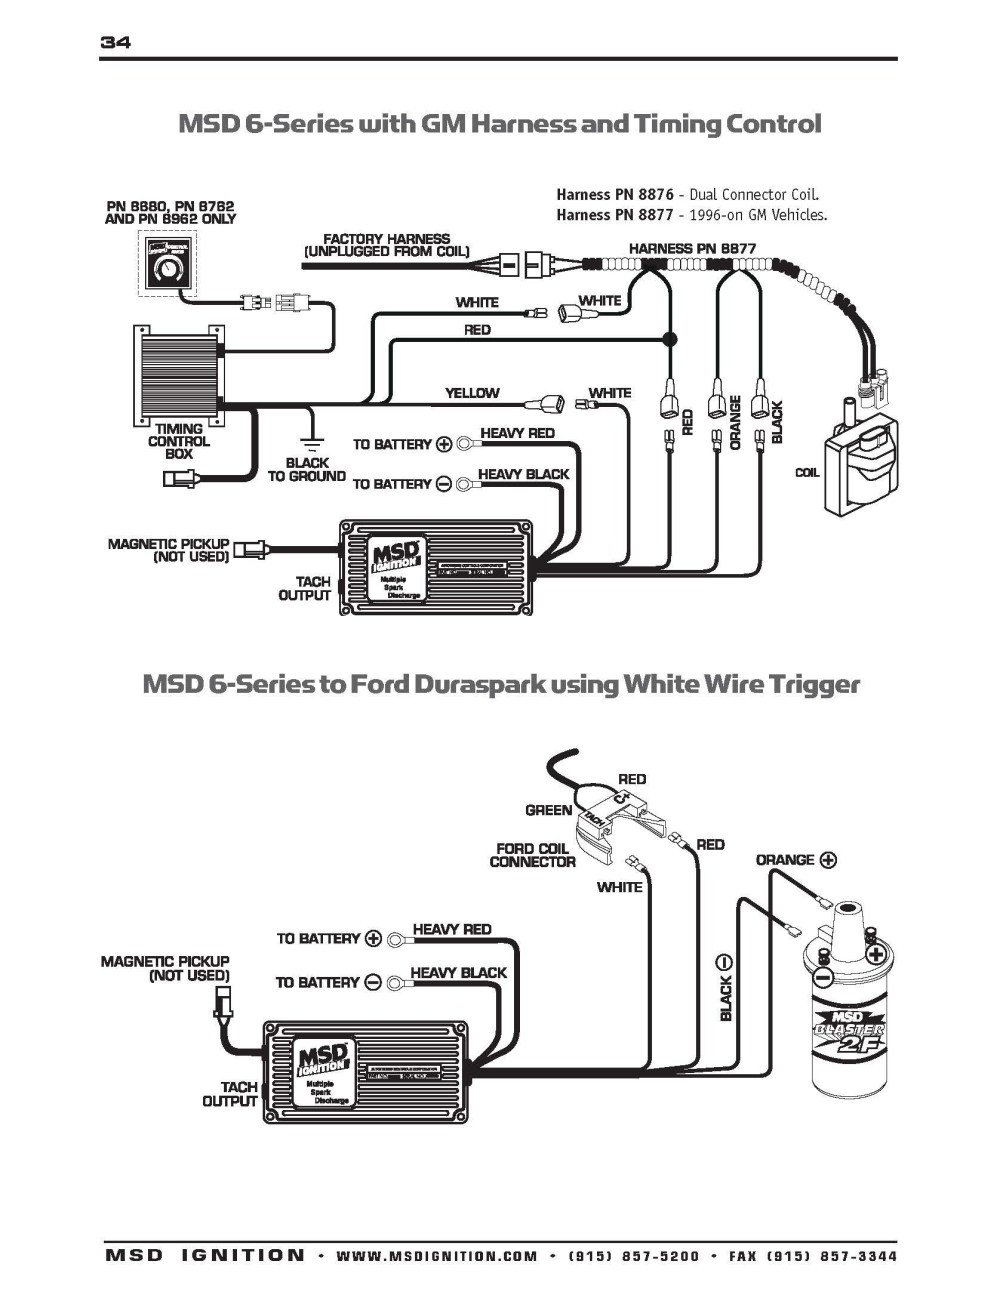 medium resolution of msd ballast wiring diagram wiring diagram used msd ballast wiring diagram wiring library msd ballast wiring